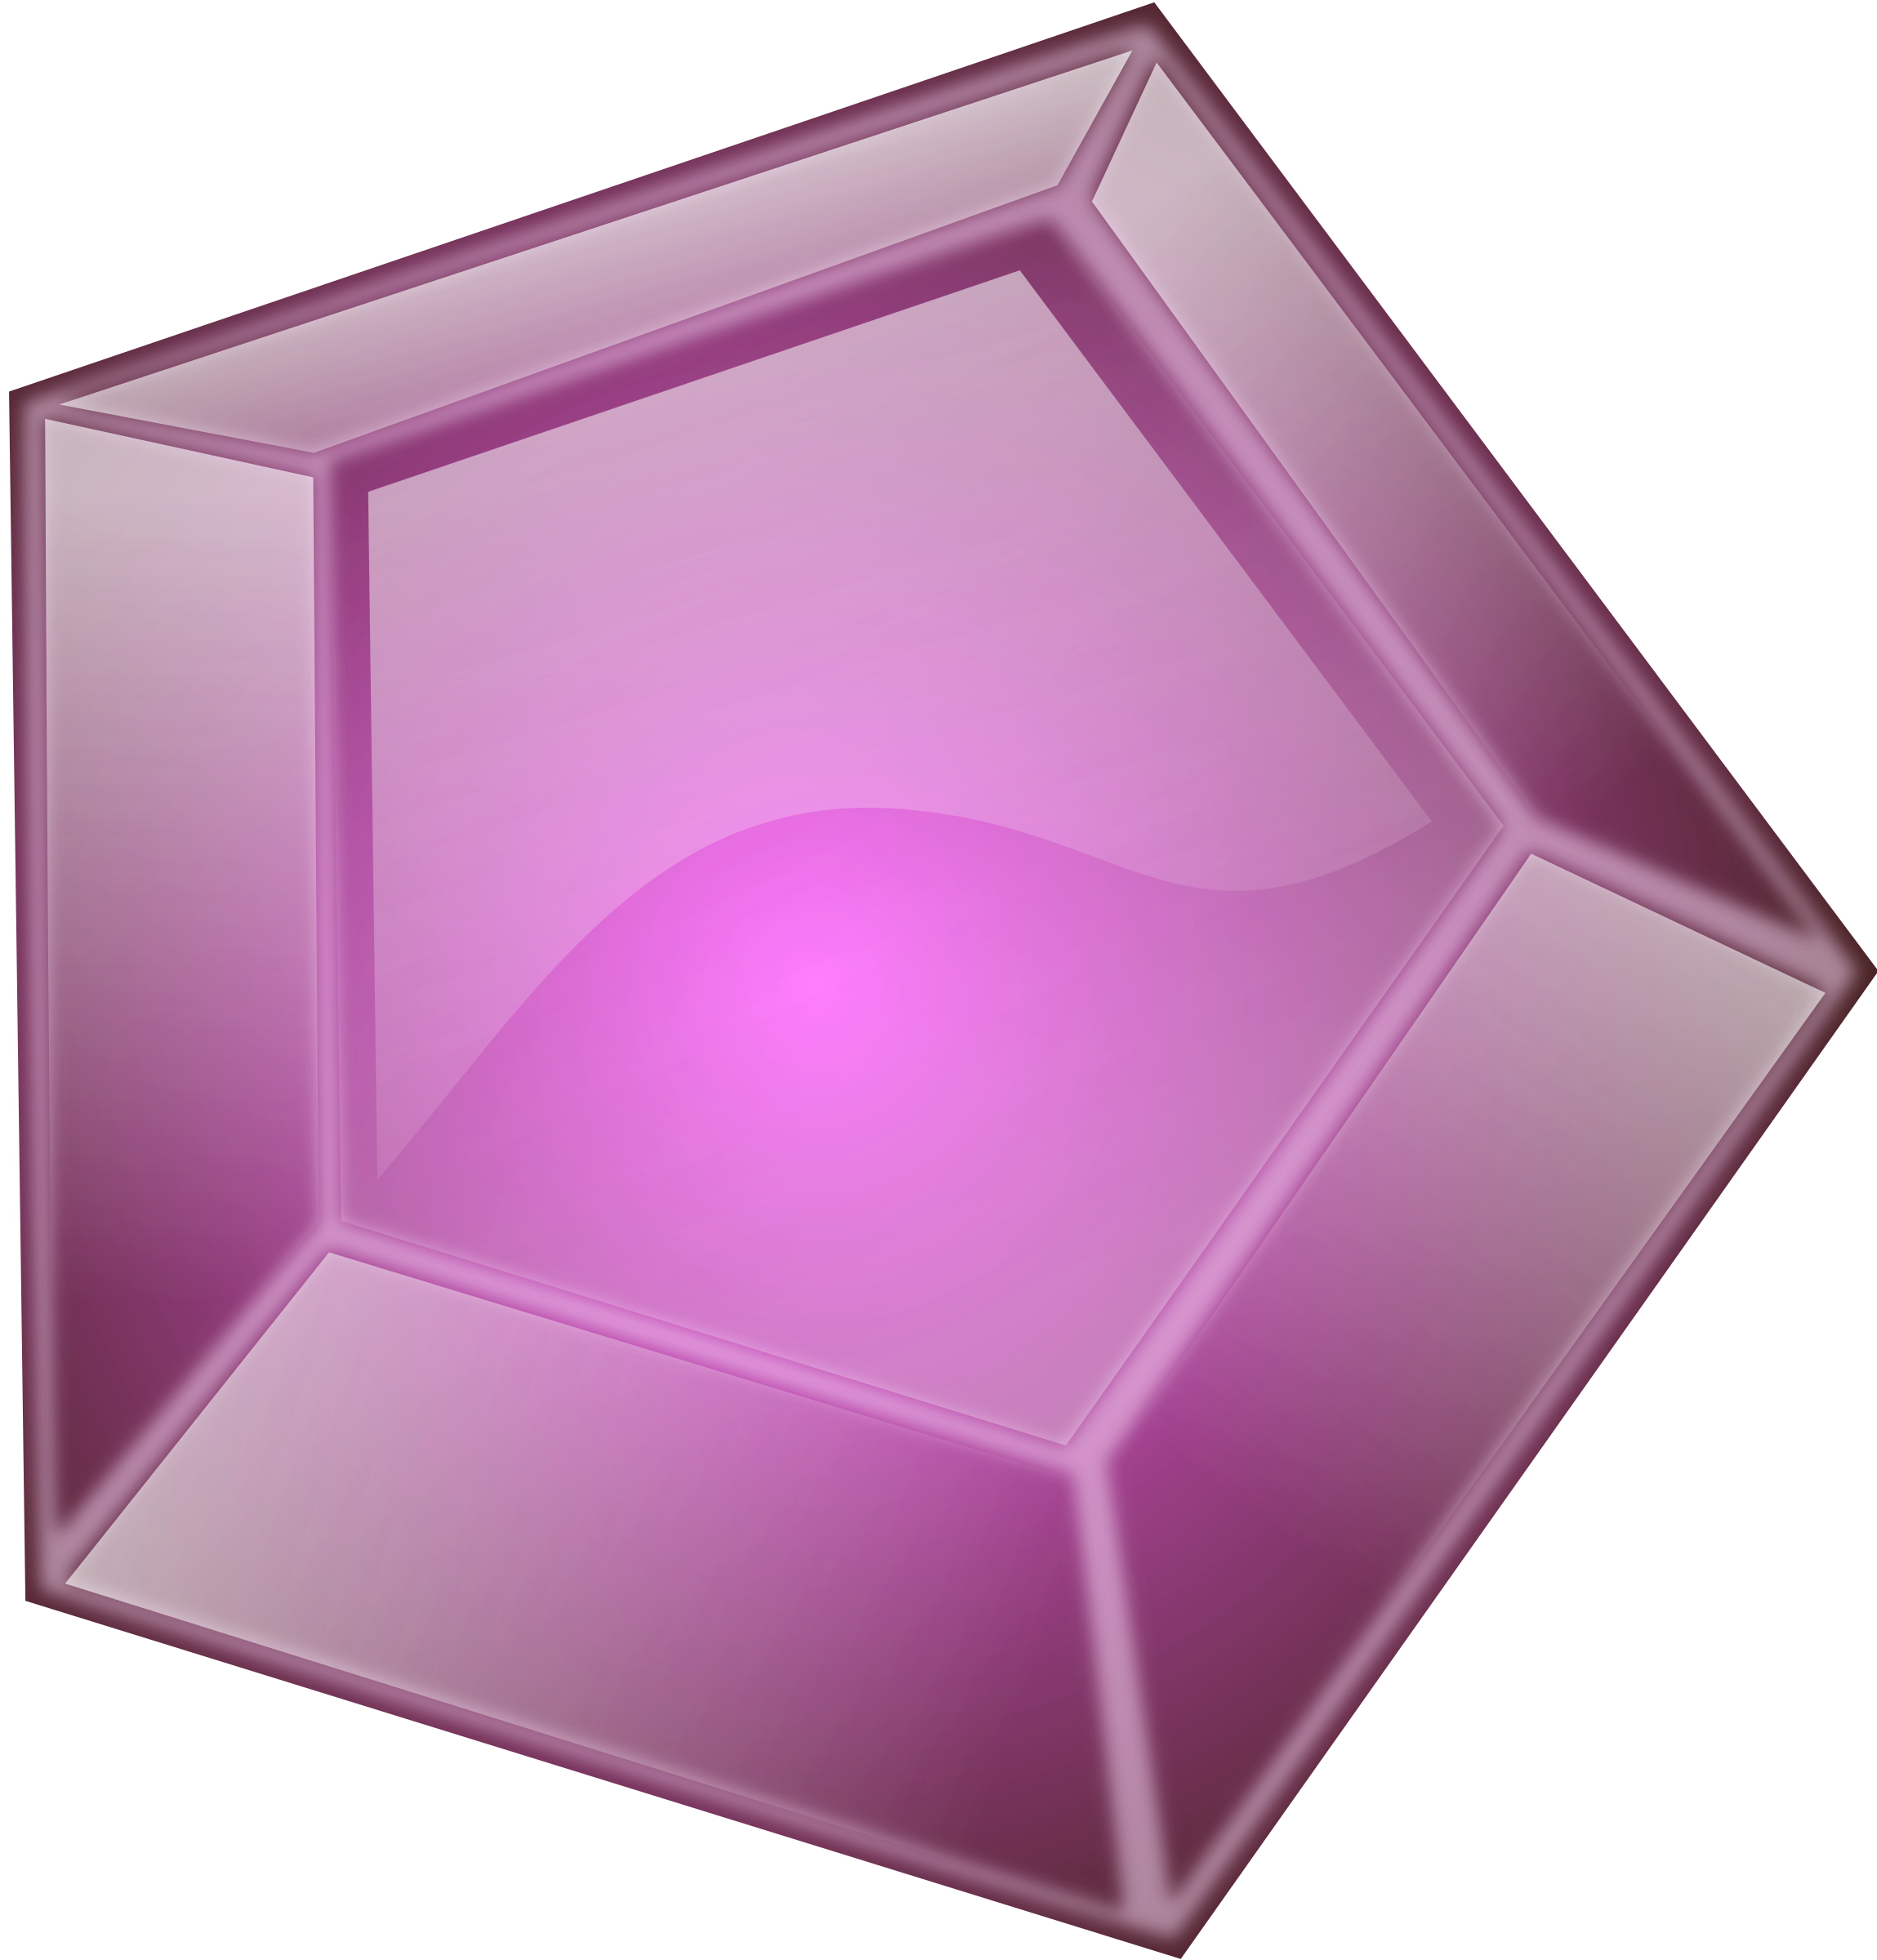 Square clipart jewel. Diamond remix big image